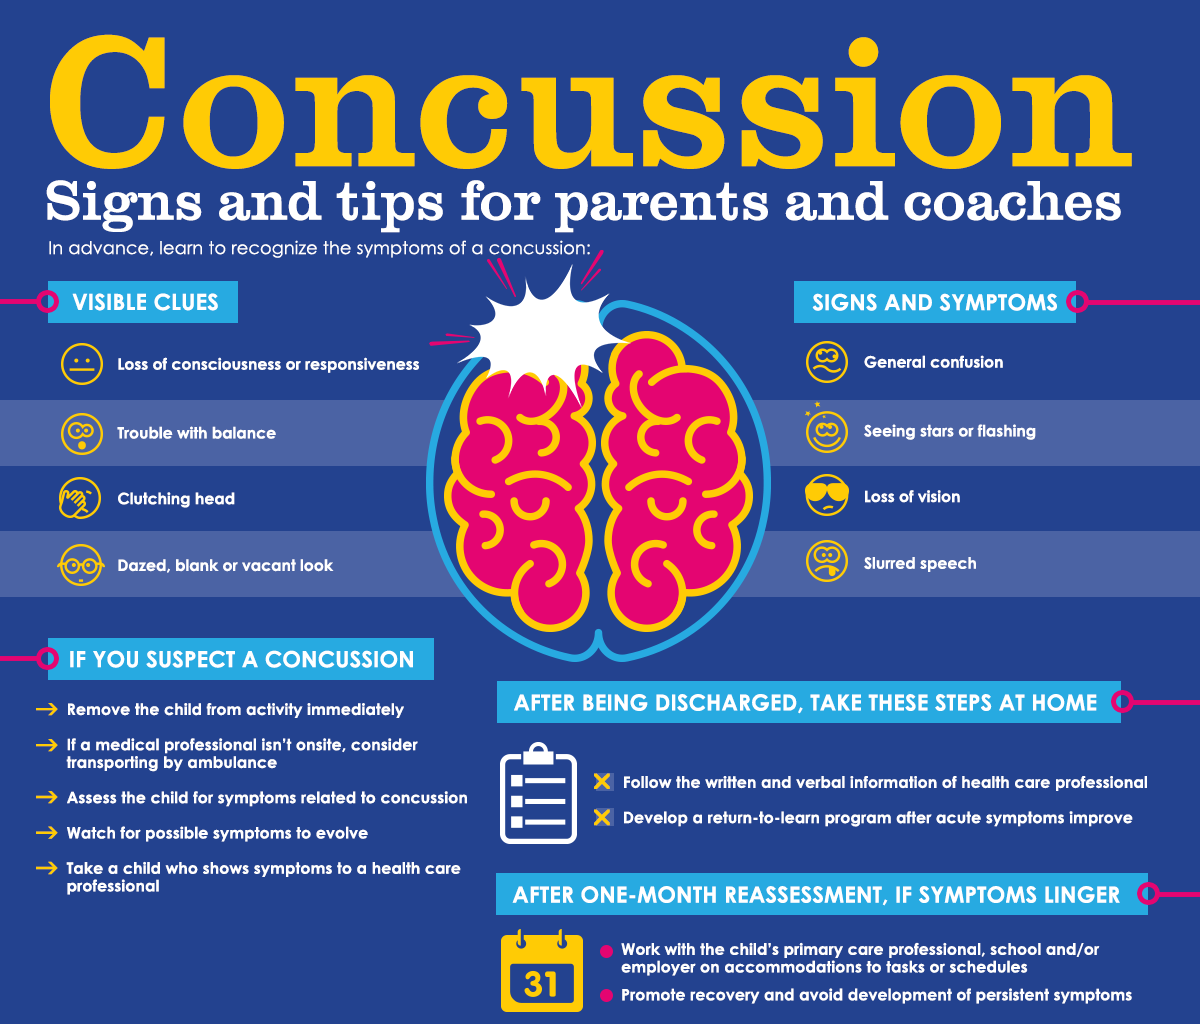 When A Concussion Occurs Or Suspected